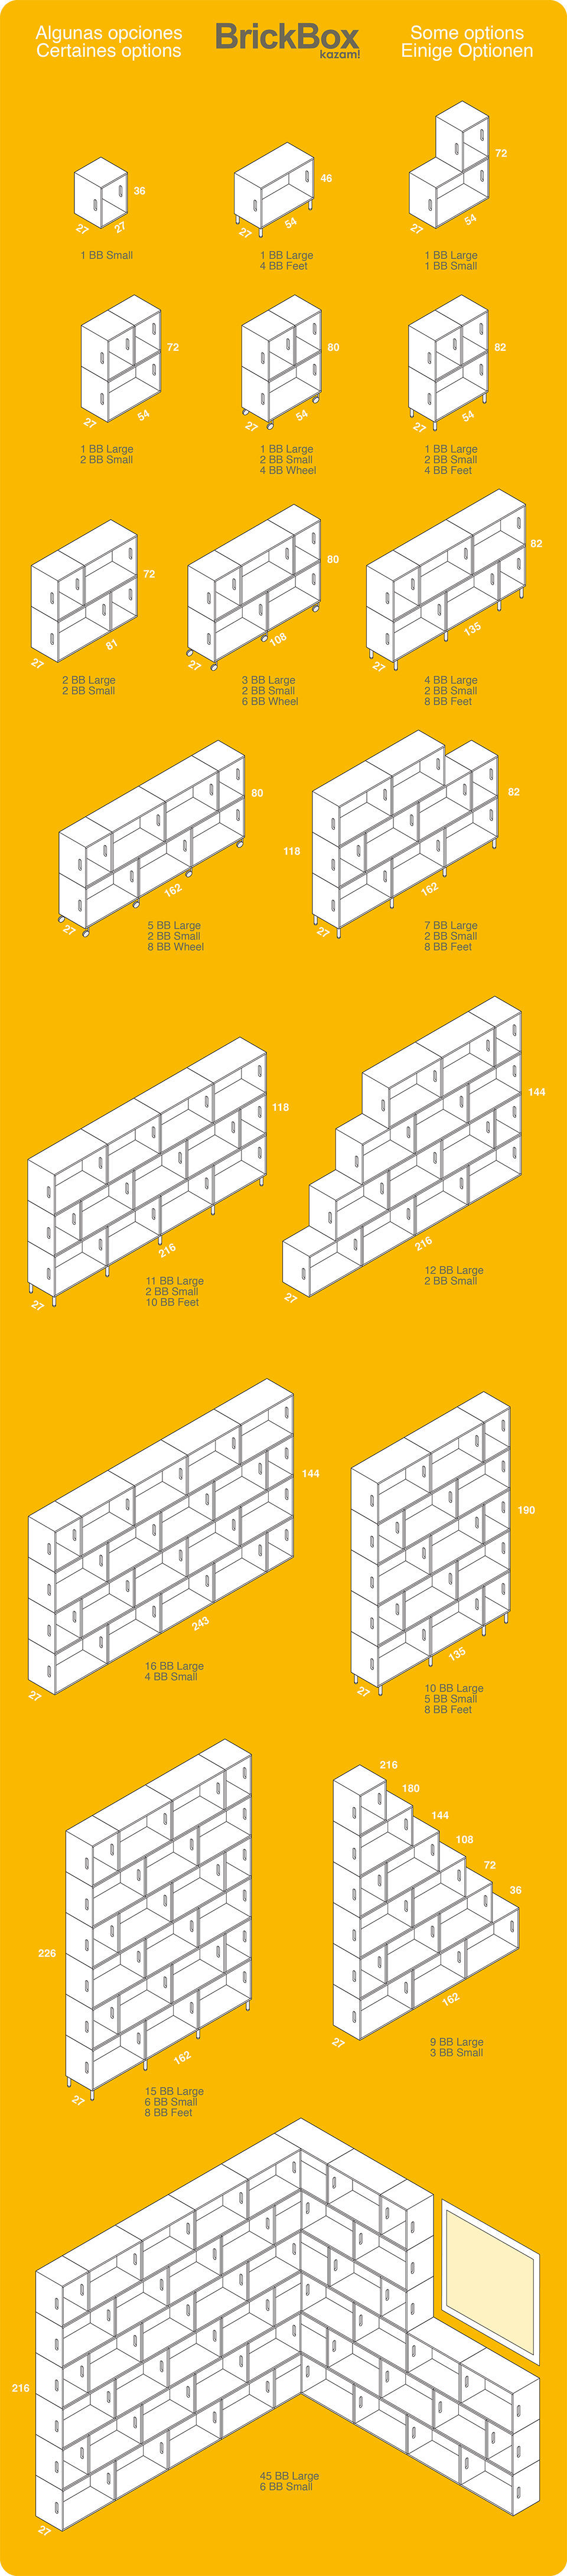 Estanterias modulares BrickBox